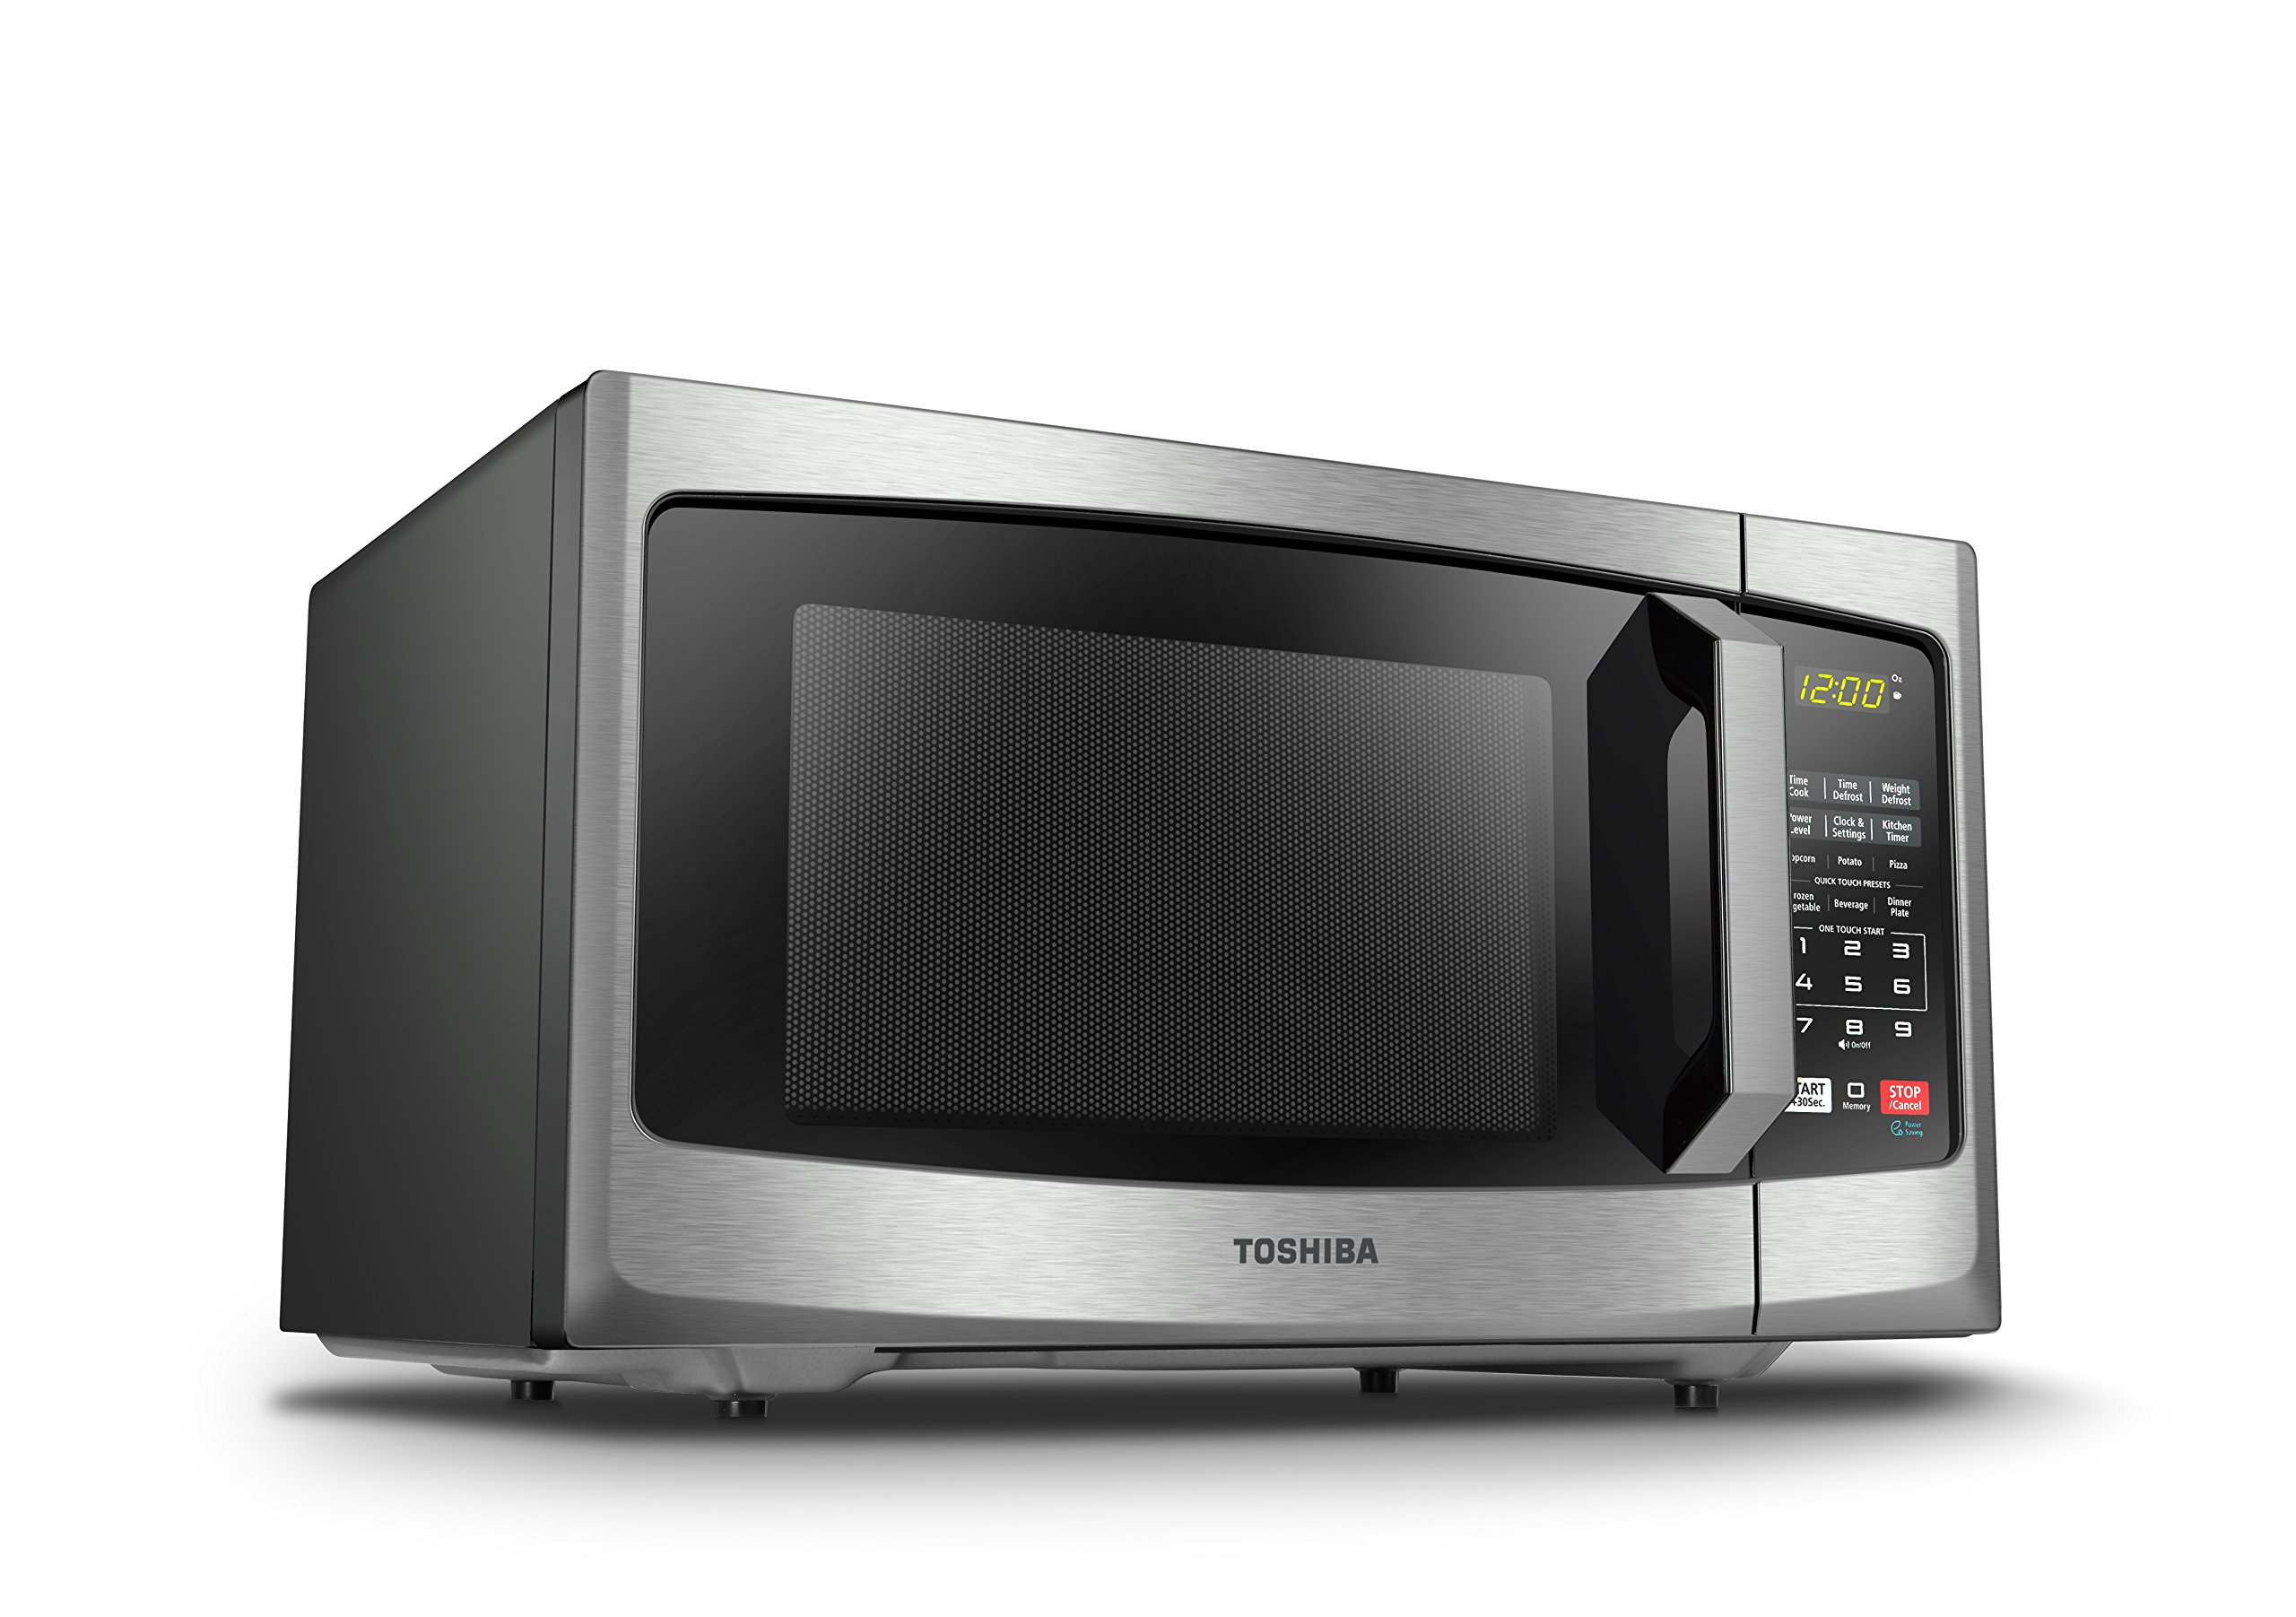 Toshiba EM925A5A-SS Microwave Oven with Sound On/Off ECO Mode and LED Lighting 0.9 cu. ft. Stainless Steel by Toshiba (Image #6)